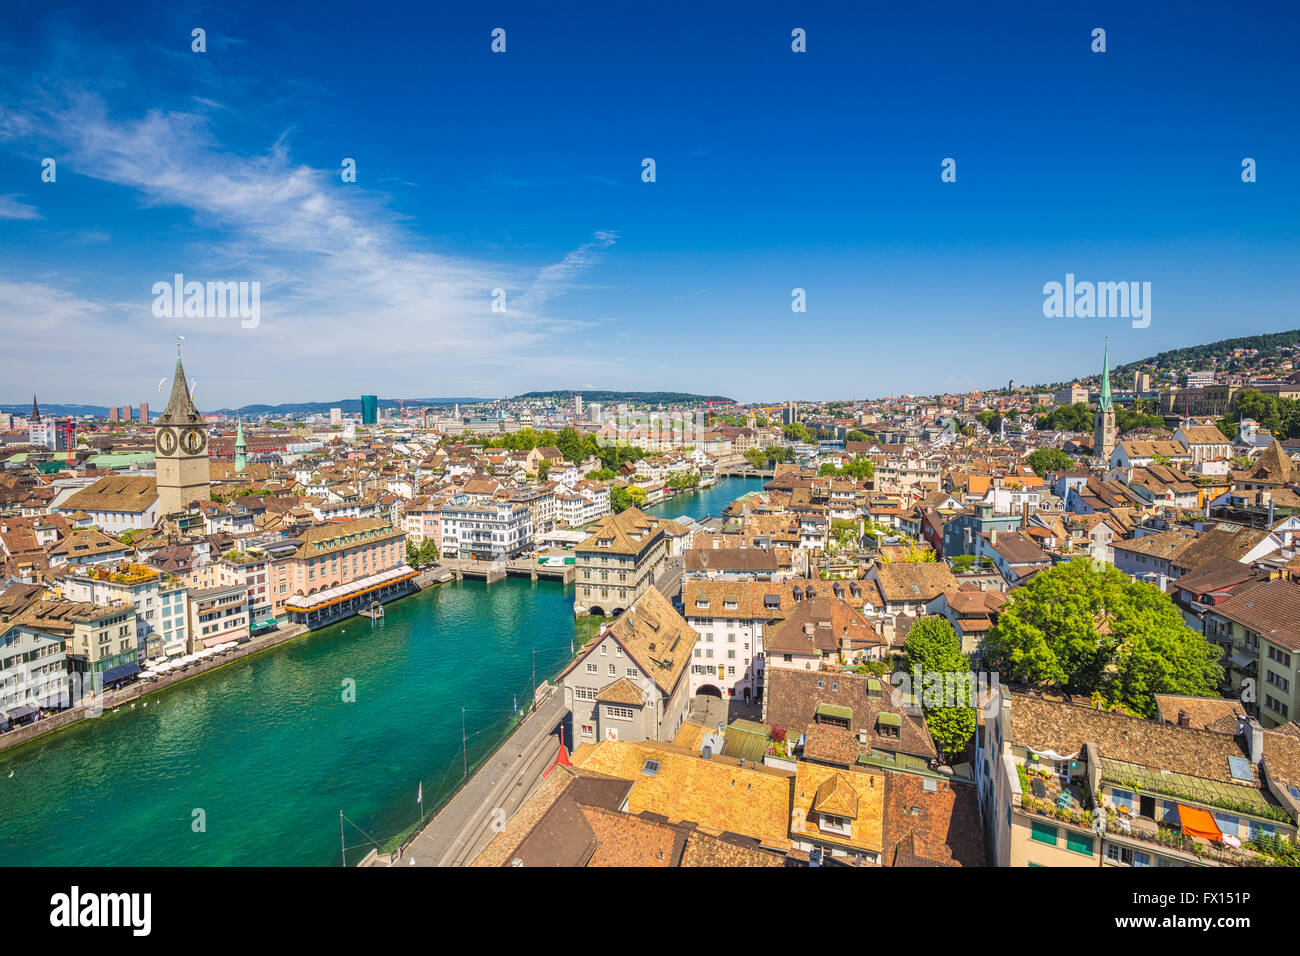 Aerial view of the historic city of Zürich with river Limmat in summer, Switzerland - Stock Image